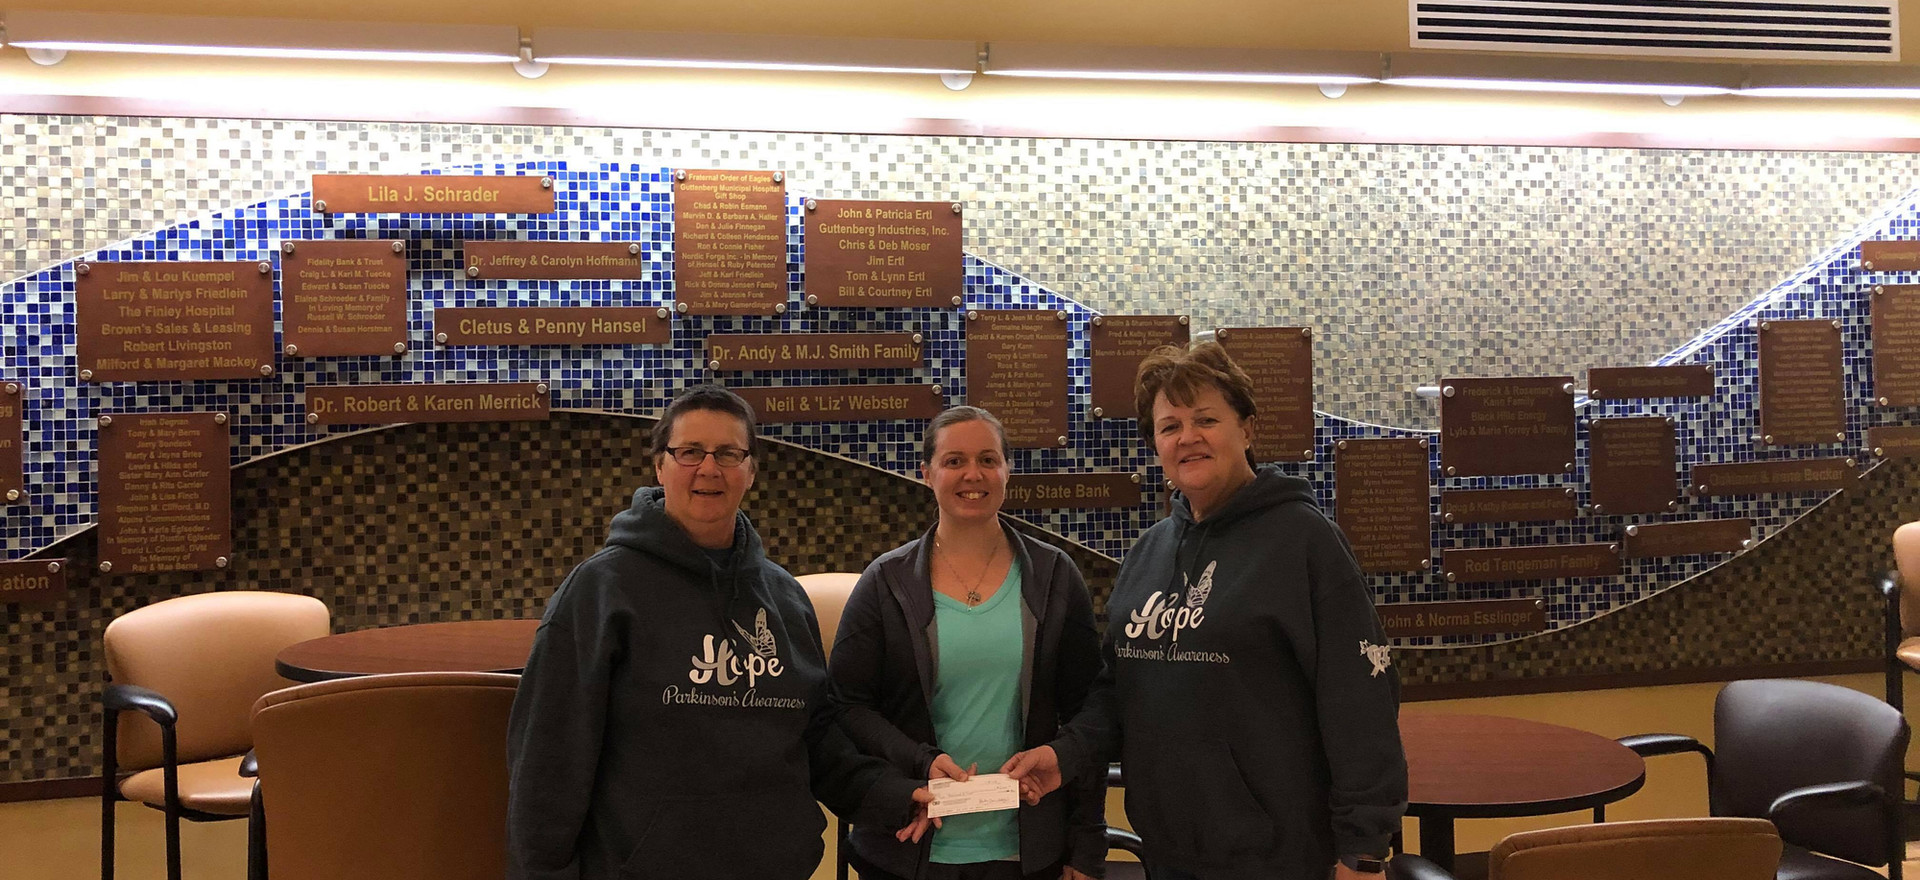 Presenting a donation to the Guttenberg Hospital (to help with Parkinson's associated costs).